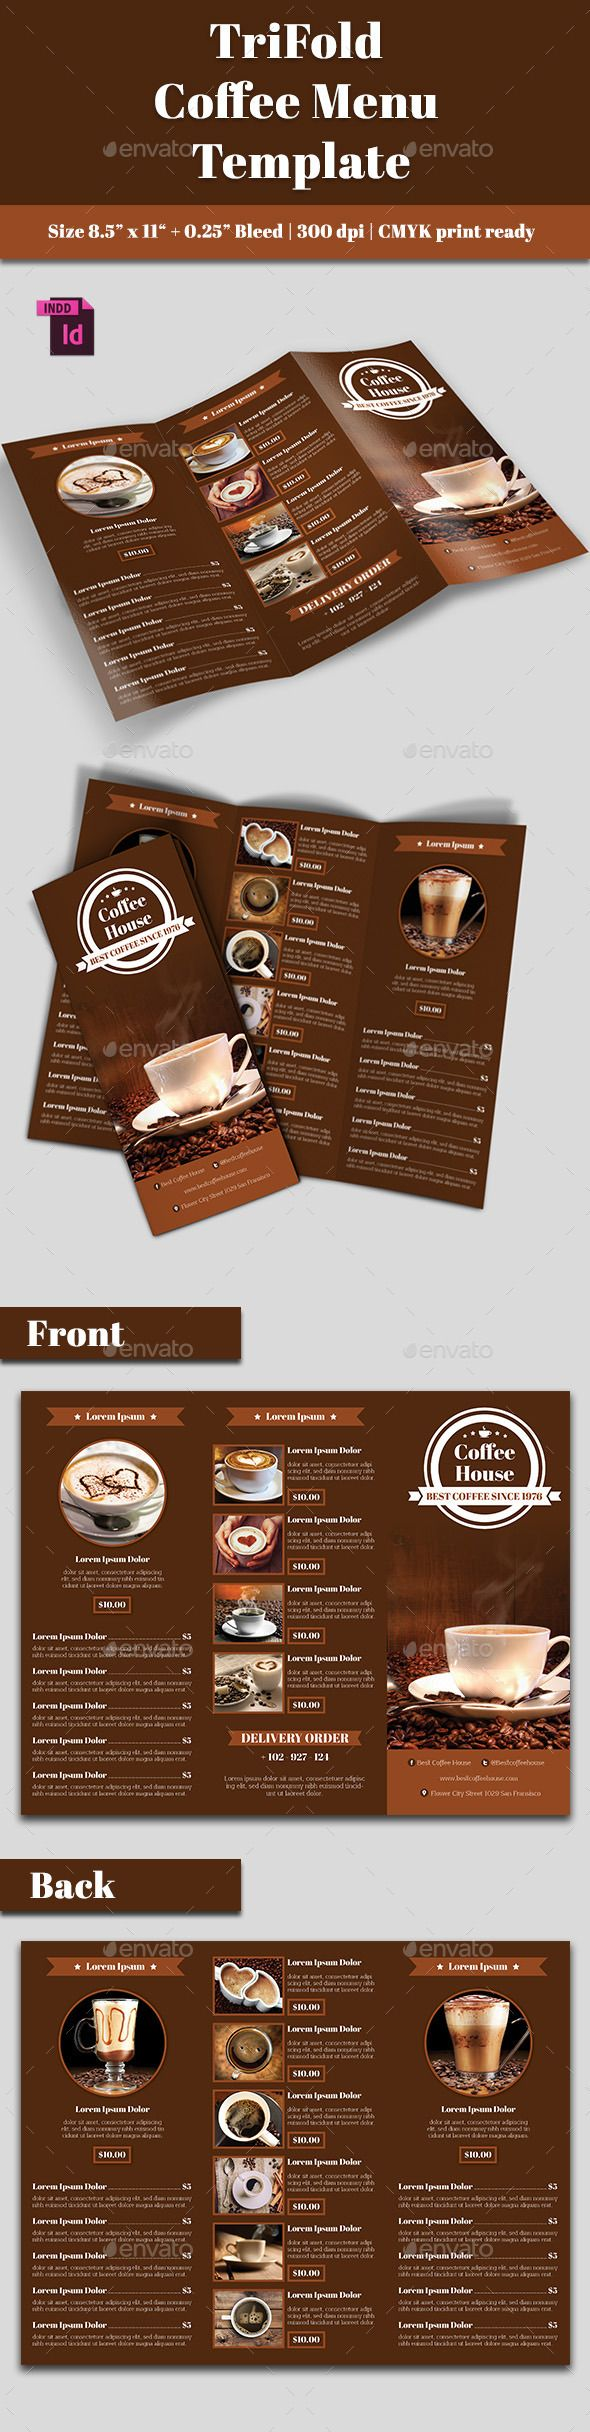 TriFold Coffee Menu — InDesign INDD #coffee shop #print • Available here → https://graphicriver.net/item/trifold-coffee-menu/10794145?ref=pxcr